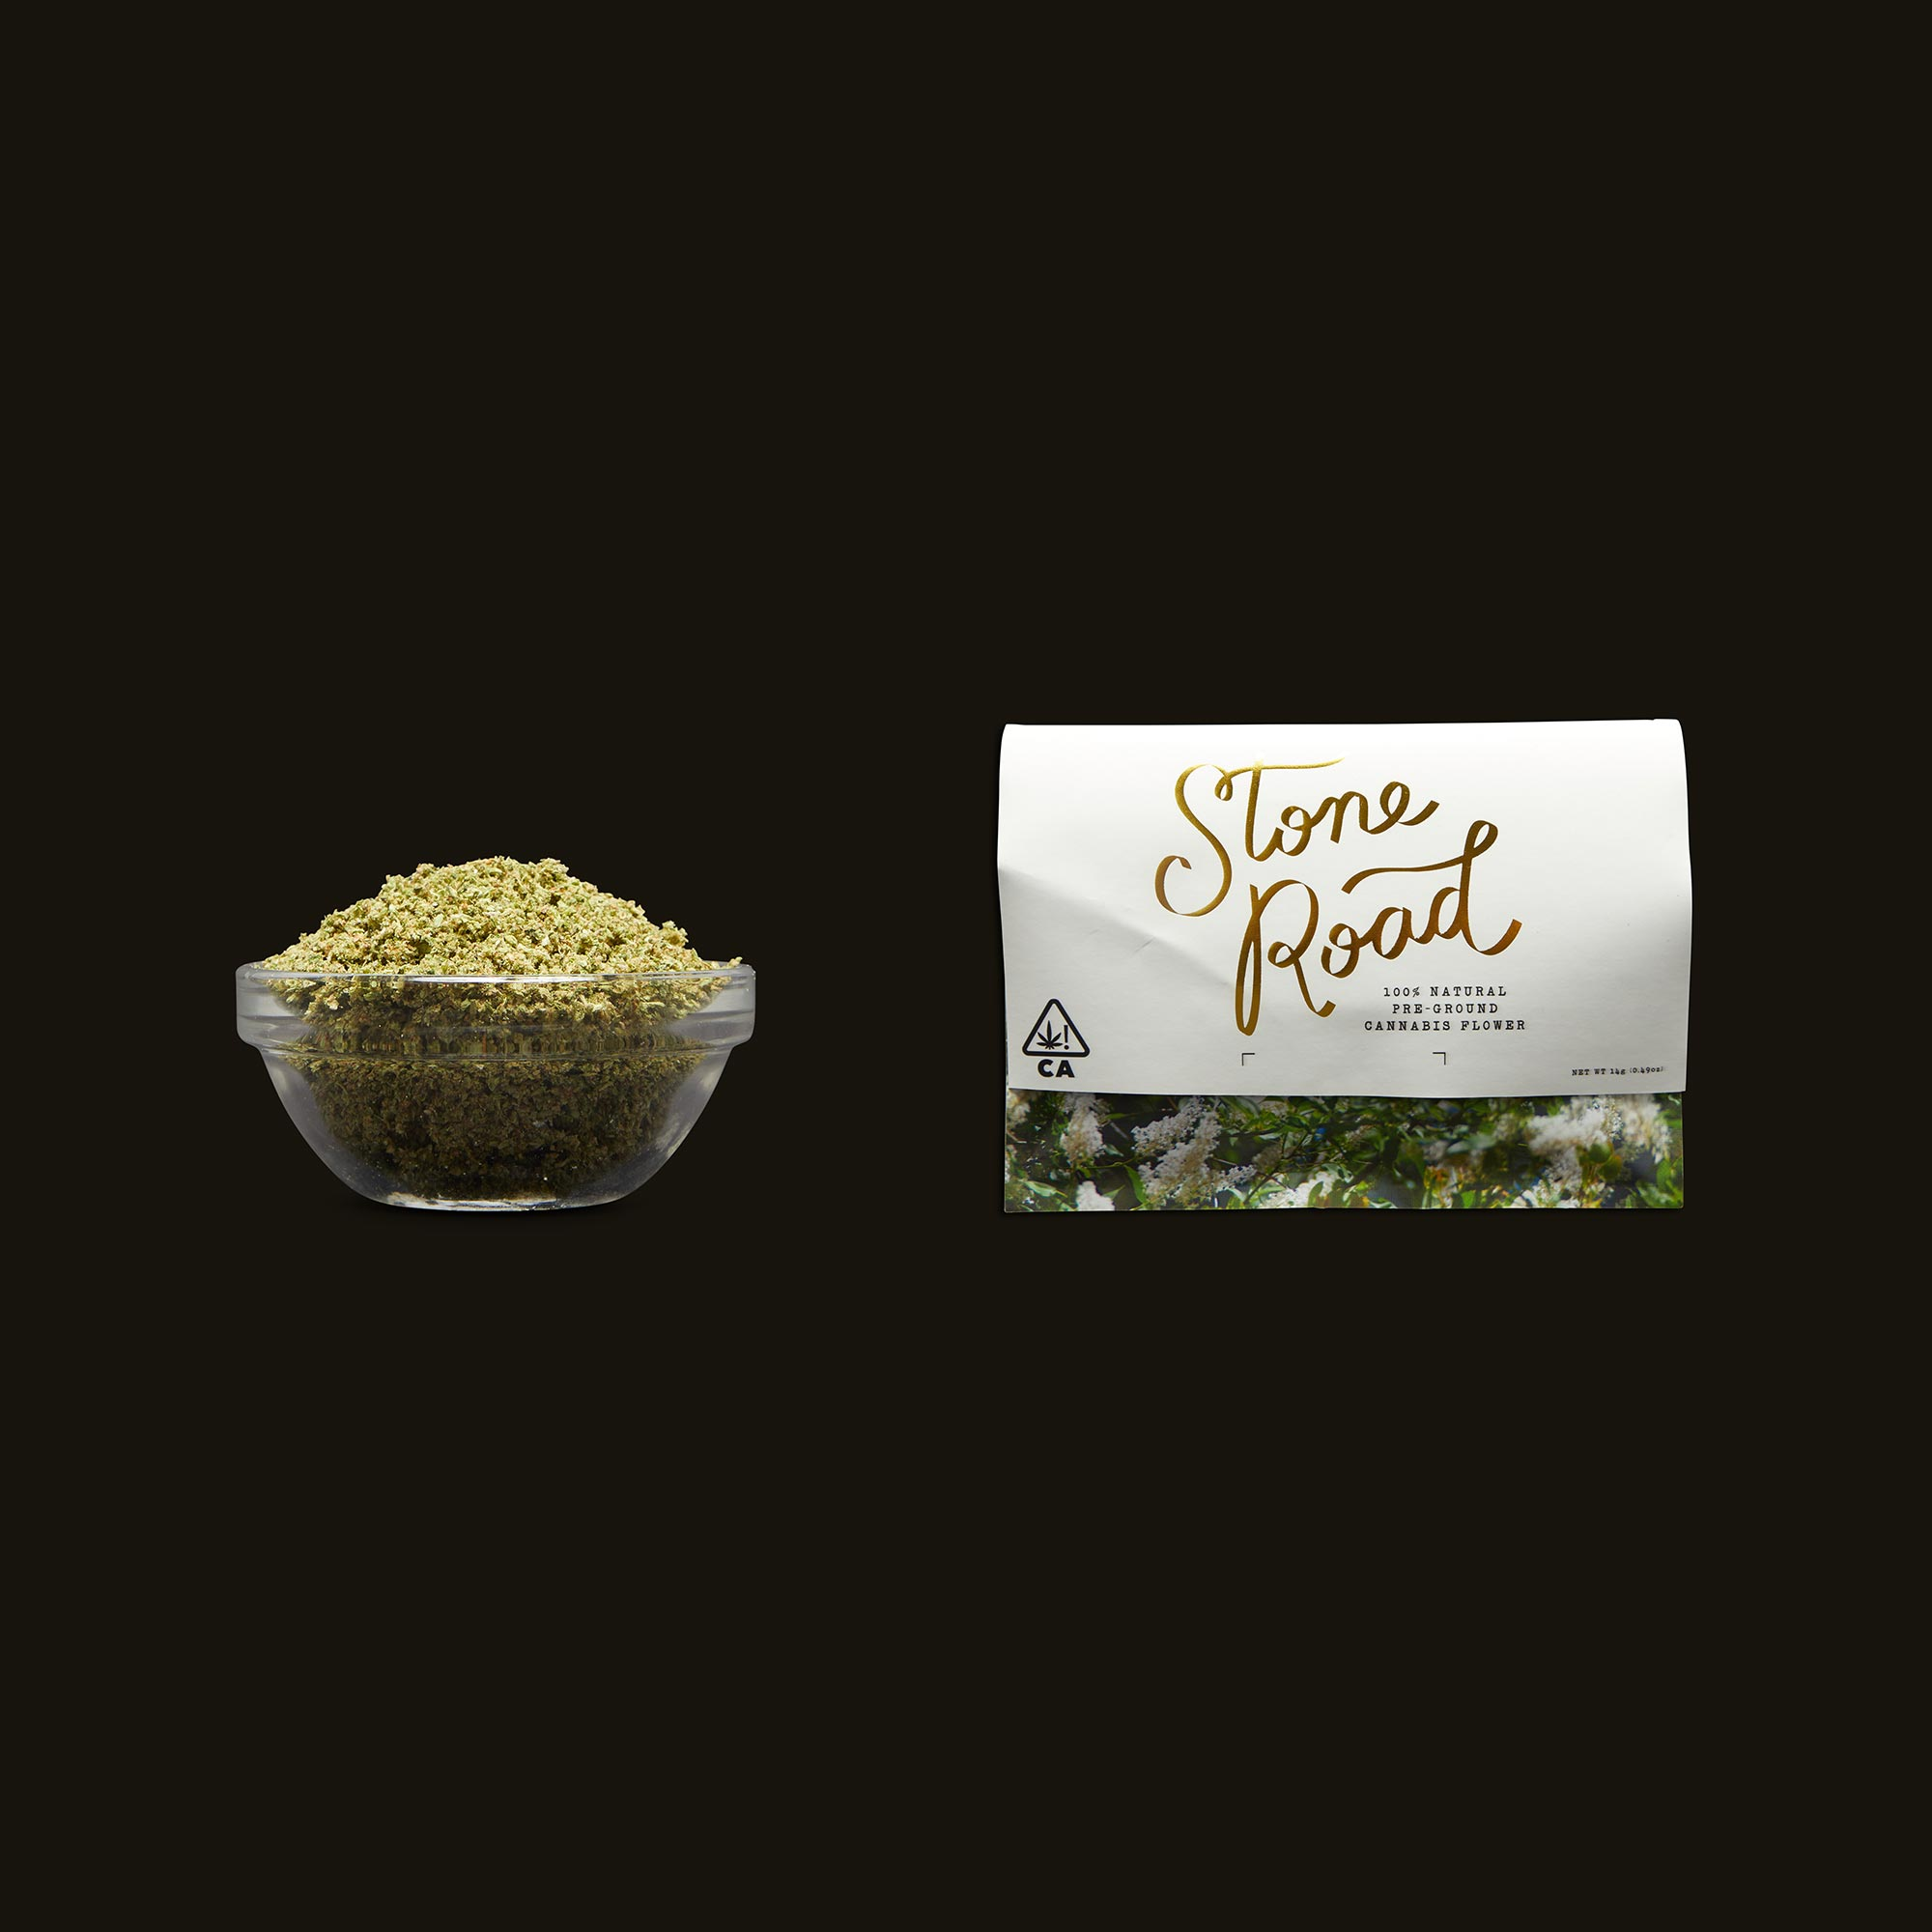 Stone Road Strawnana Roll Your Own Pouch 1/2 Ounce